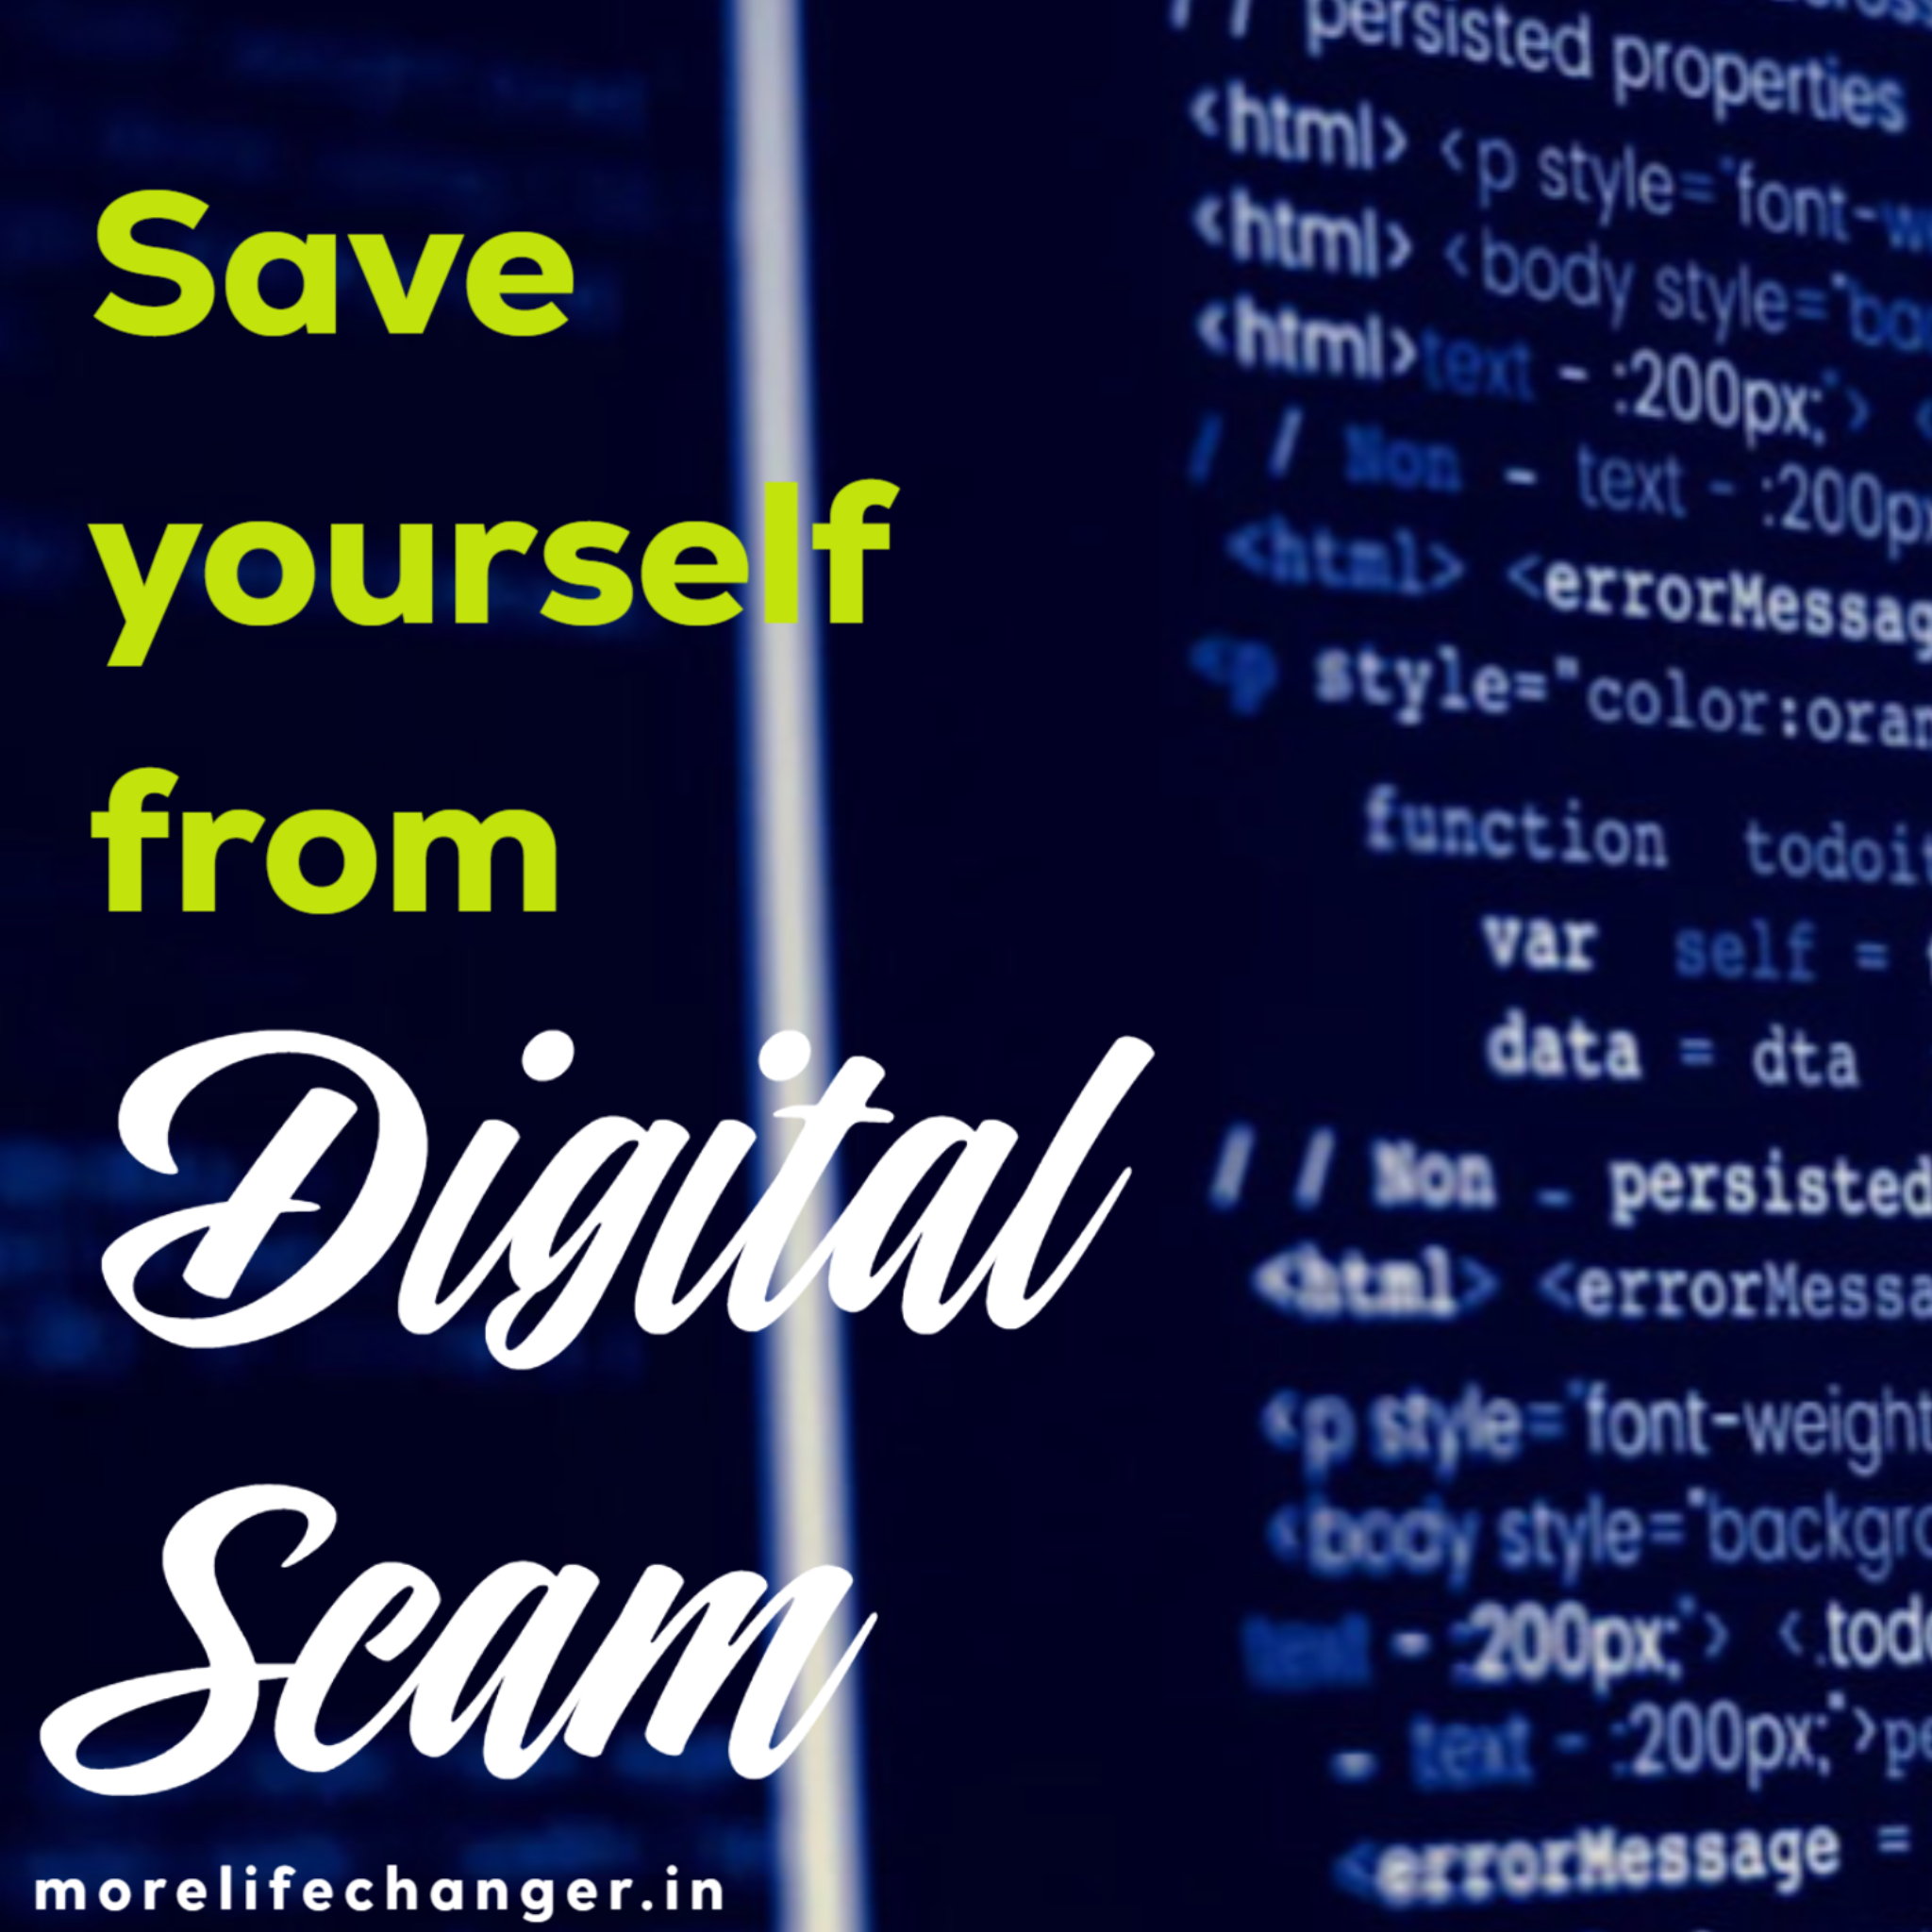 Save yourself from digital scam